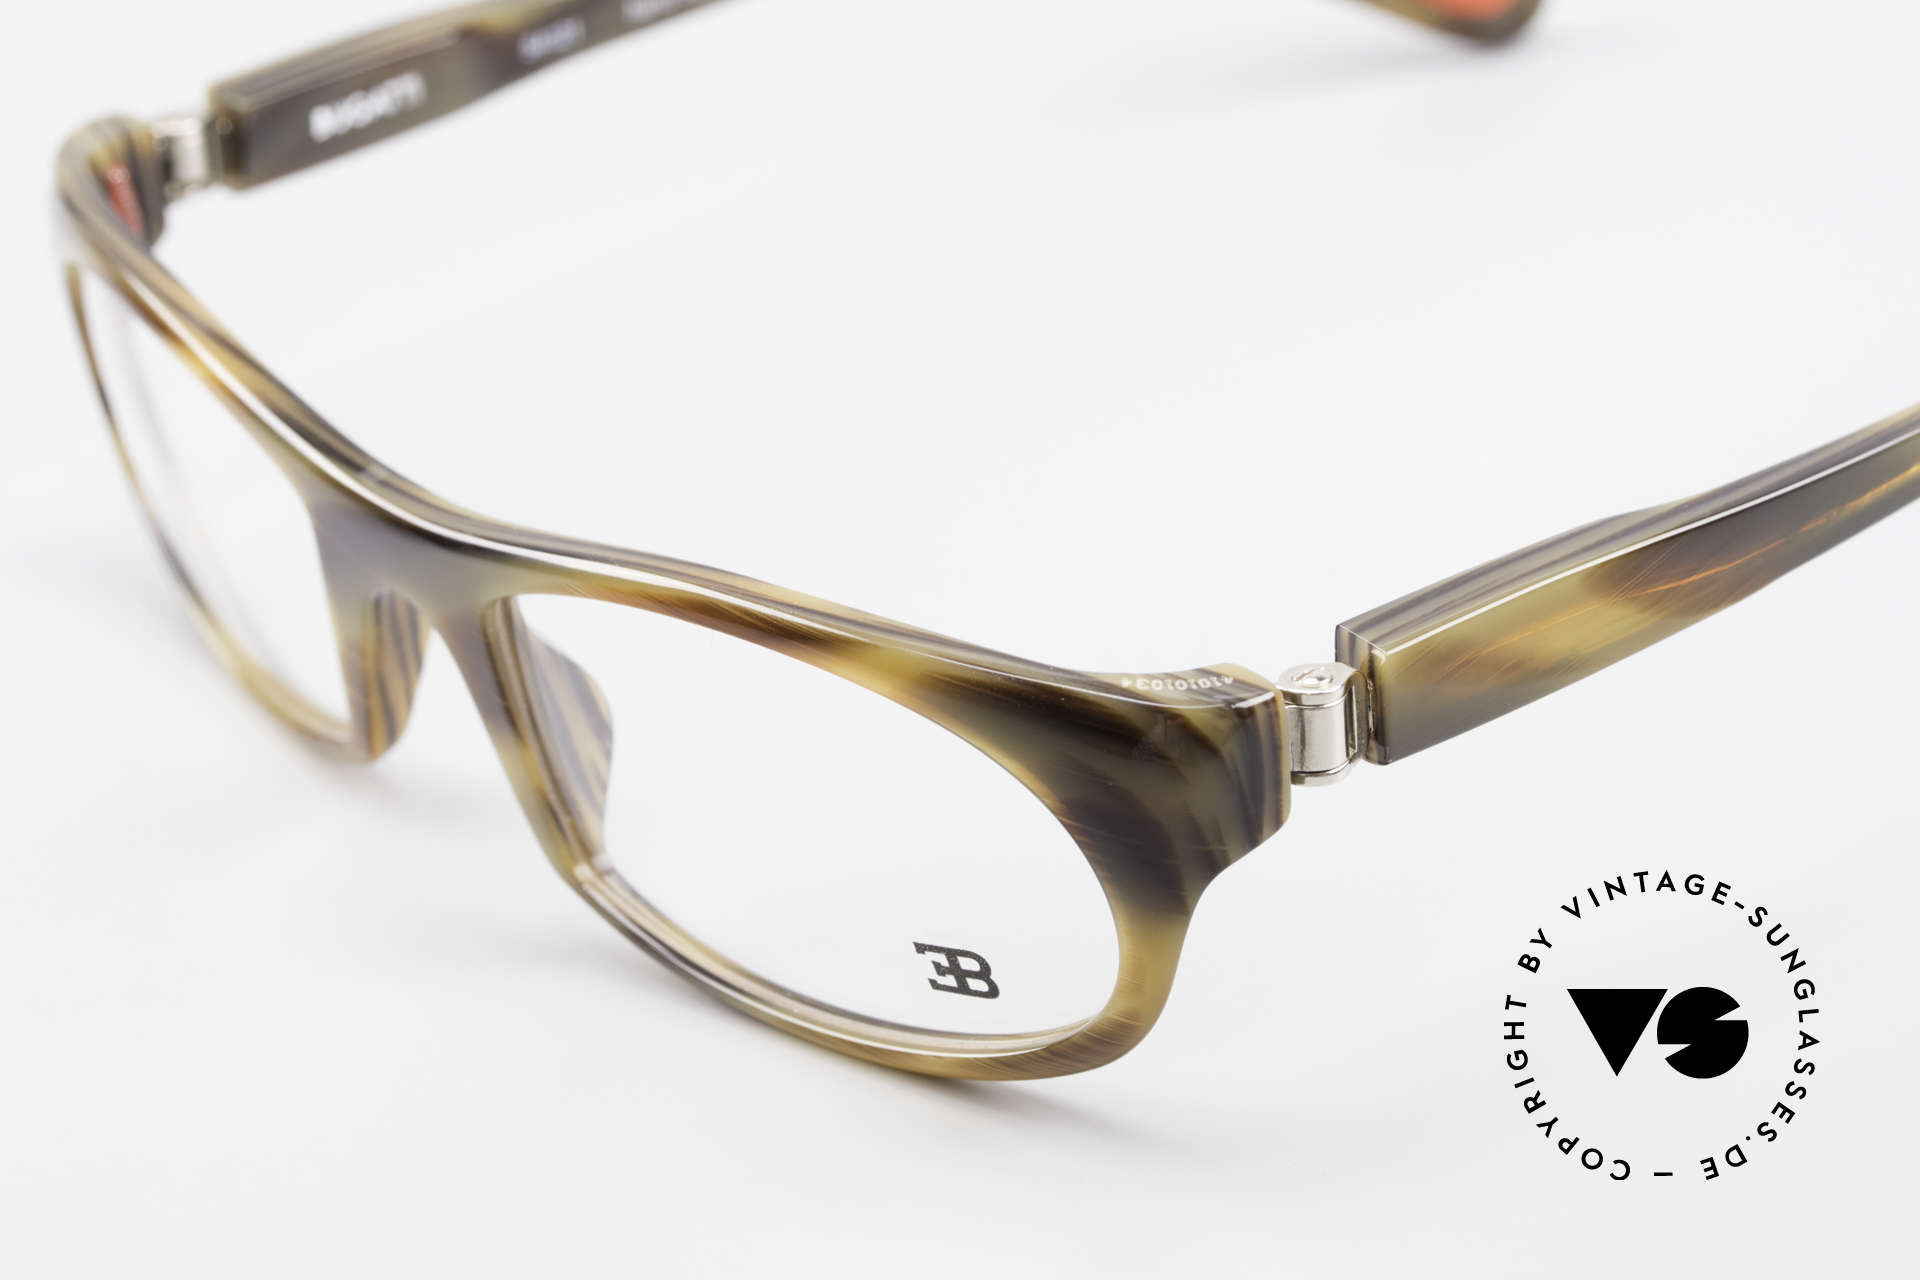 Bugatti 326 Odotype True Vintage Eyeglass-Frame, very special lens construction; TOP comfort, Made for Men